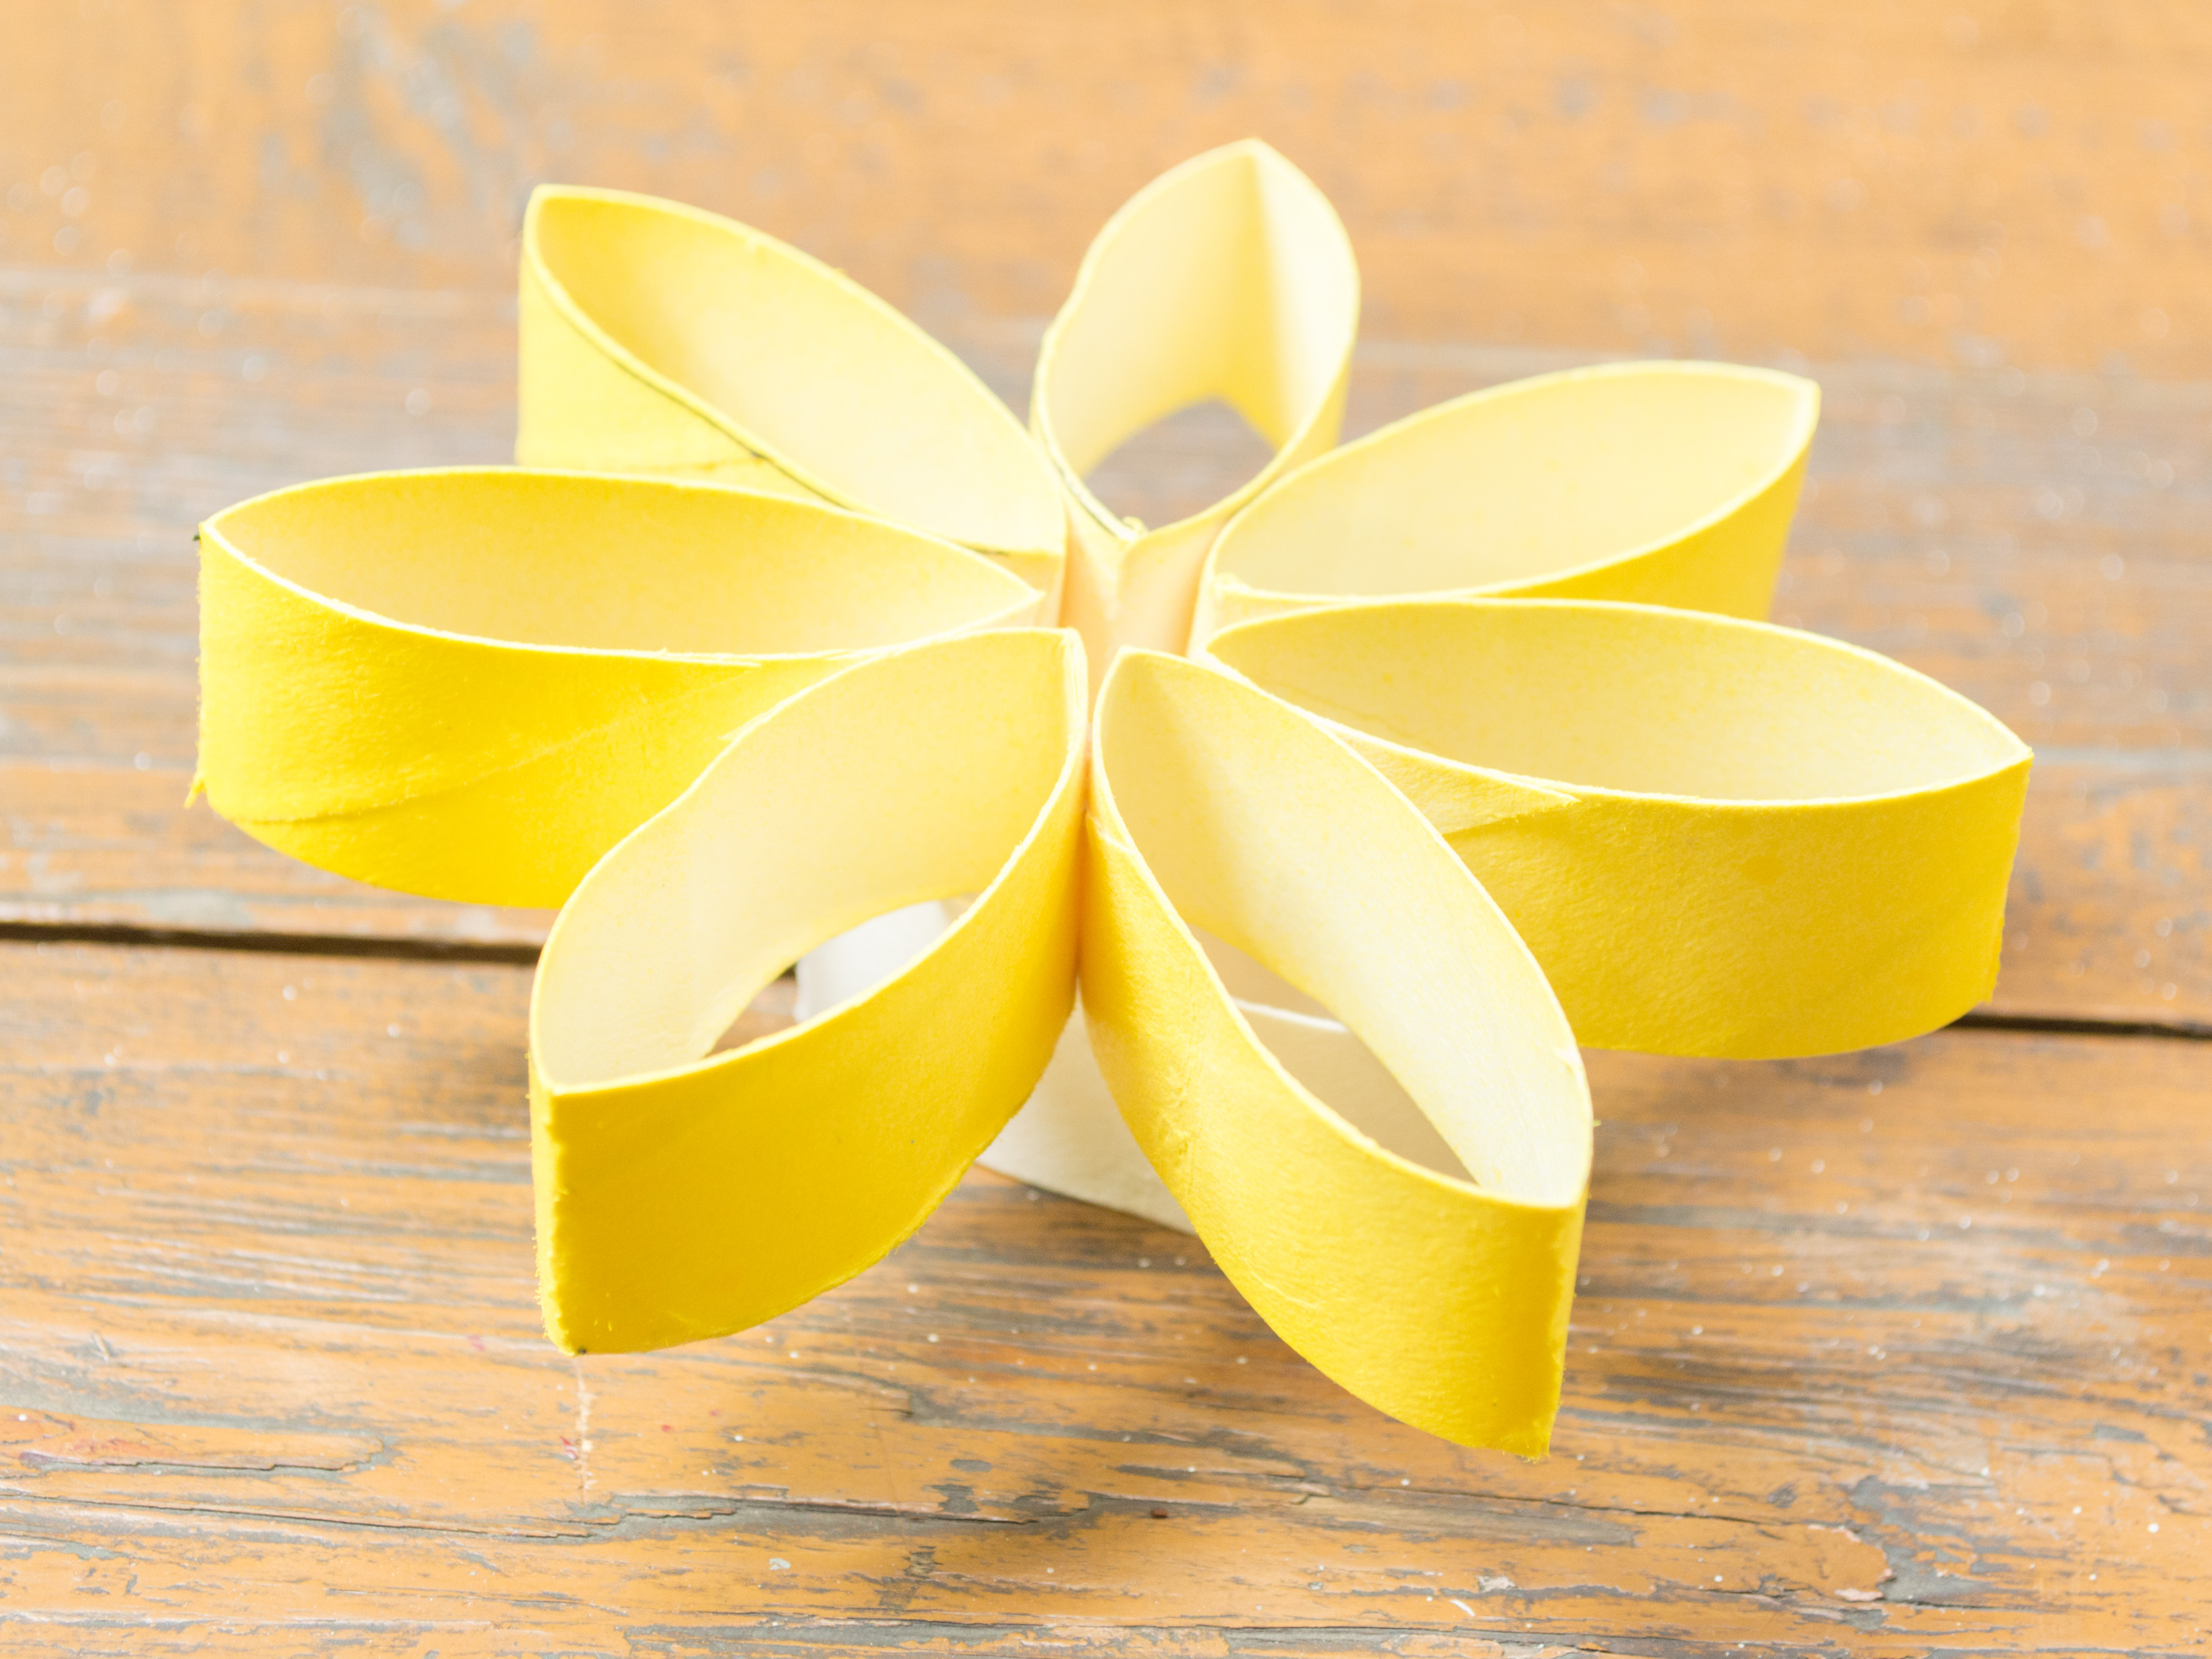 3 Easy Designs of Crafts Out Otissue Paper 3 Ways To Make Flowers Made Of Toilet Paper Wikihow